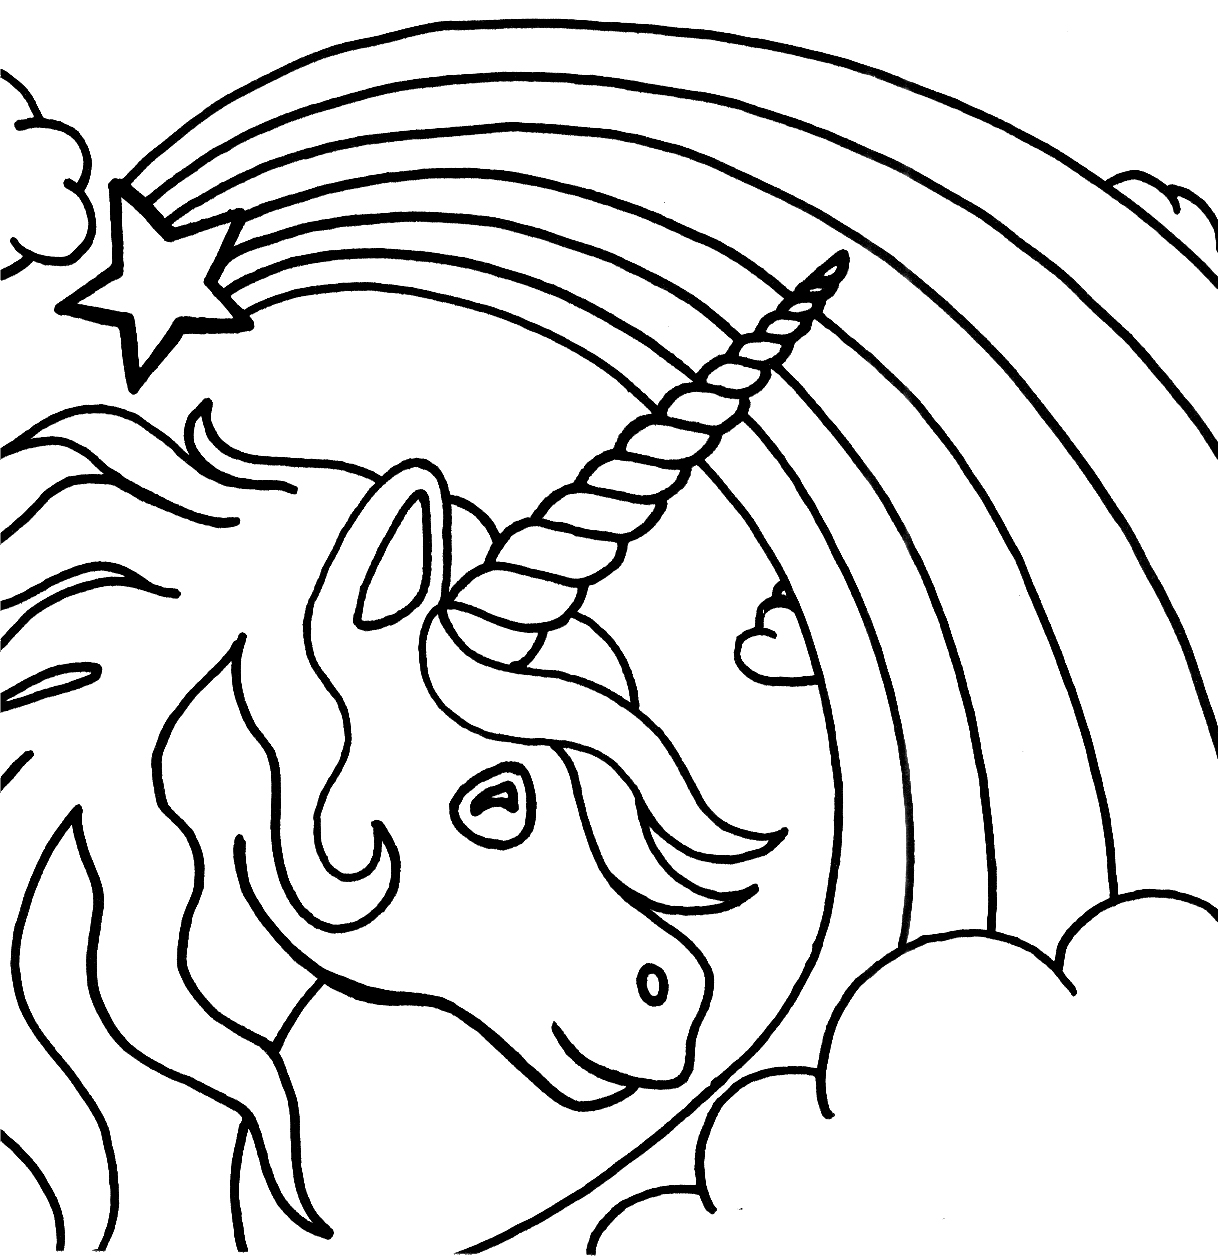 unicorn coloring pages for kids - Coloring Papges